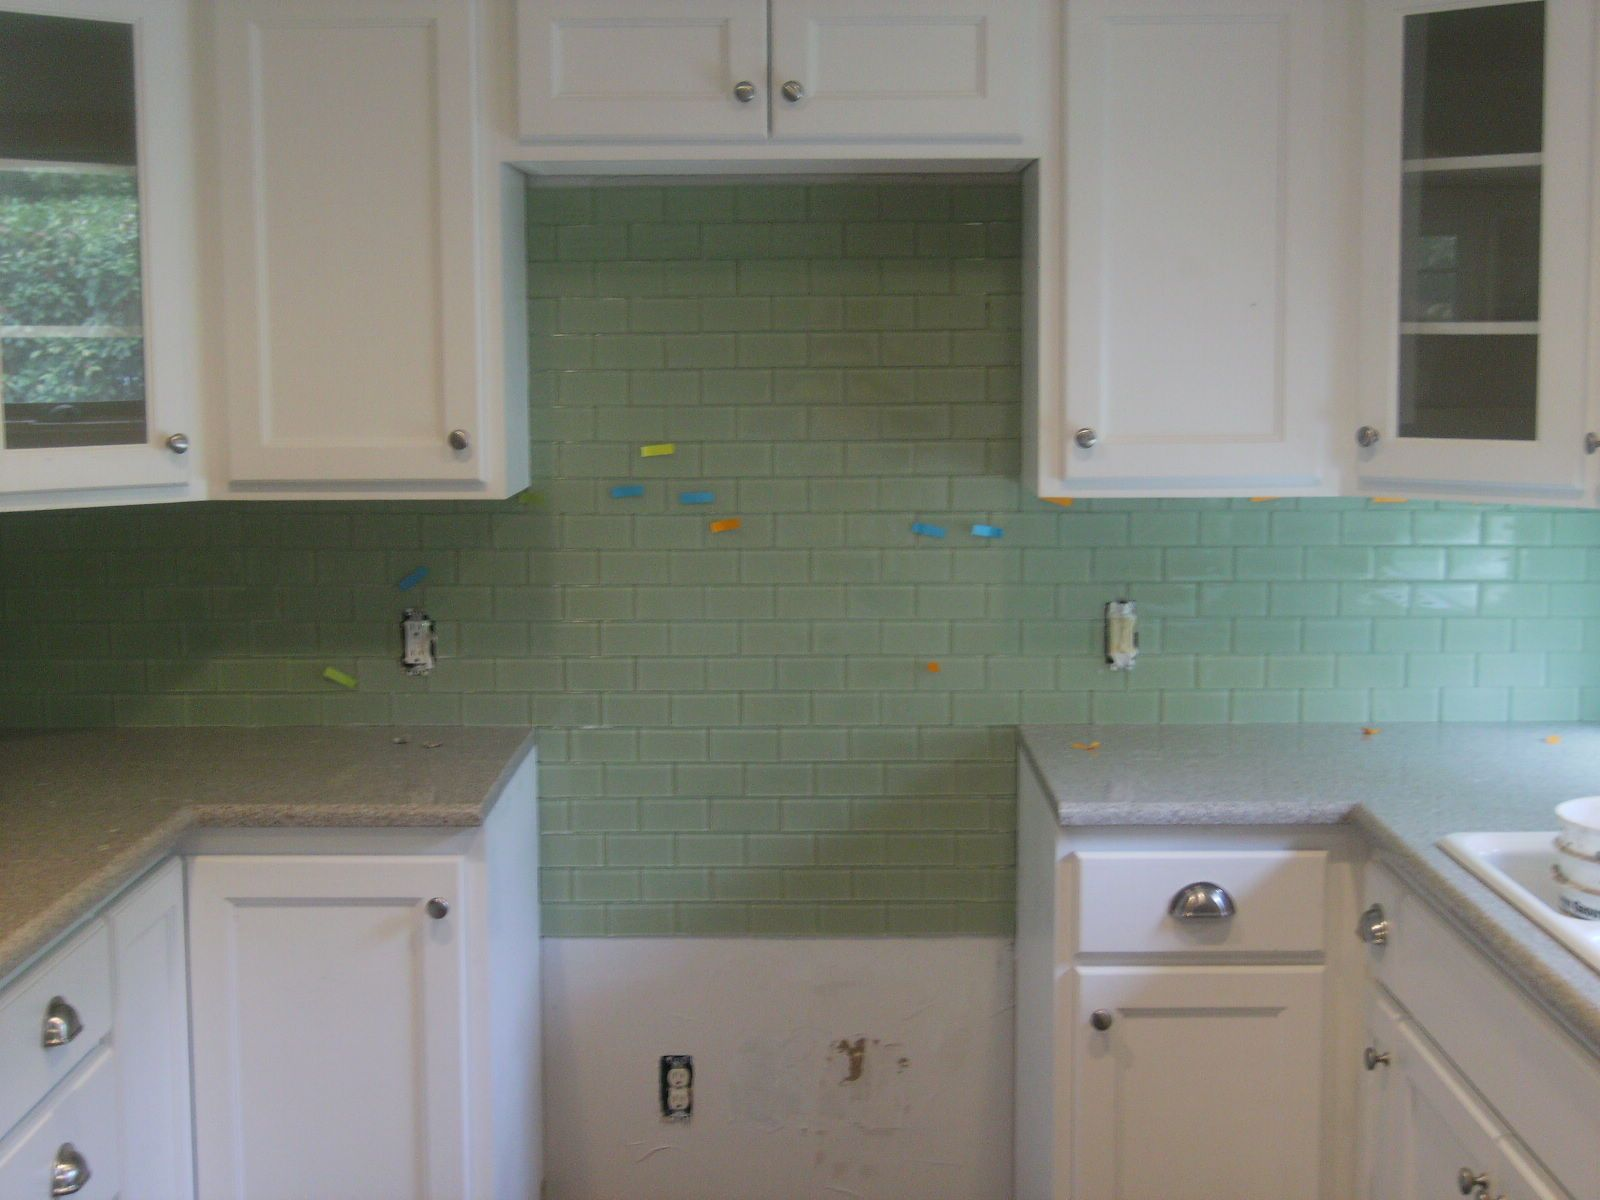 kitchen countertops subway tile install confessions tile spanish tiles best kitchens back splashes traditional backsplash ceramic - Glass Tiles For Backsplash